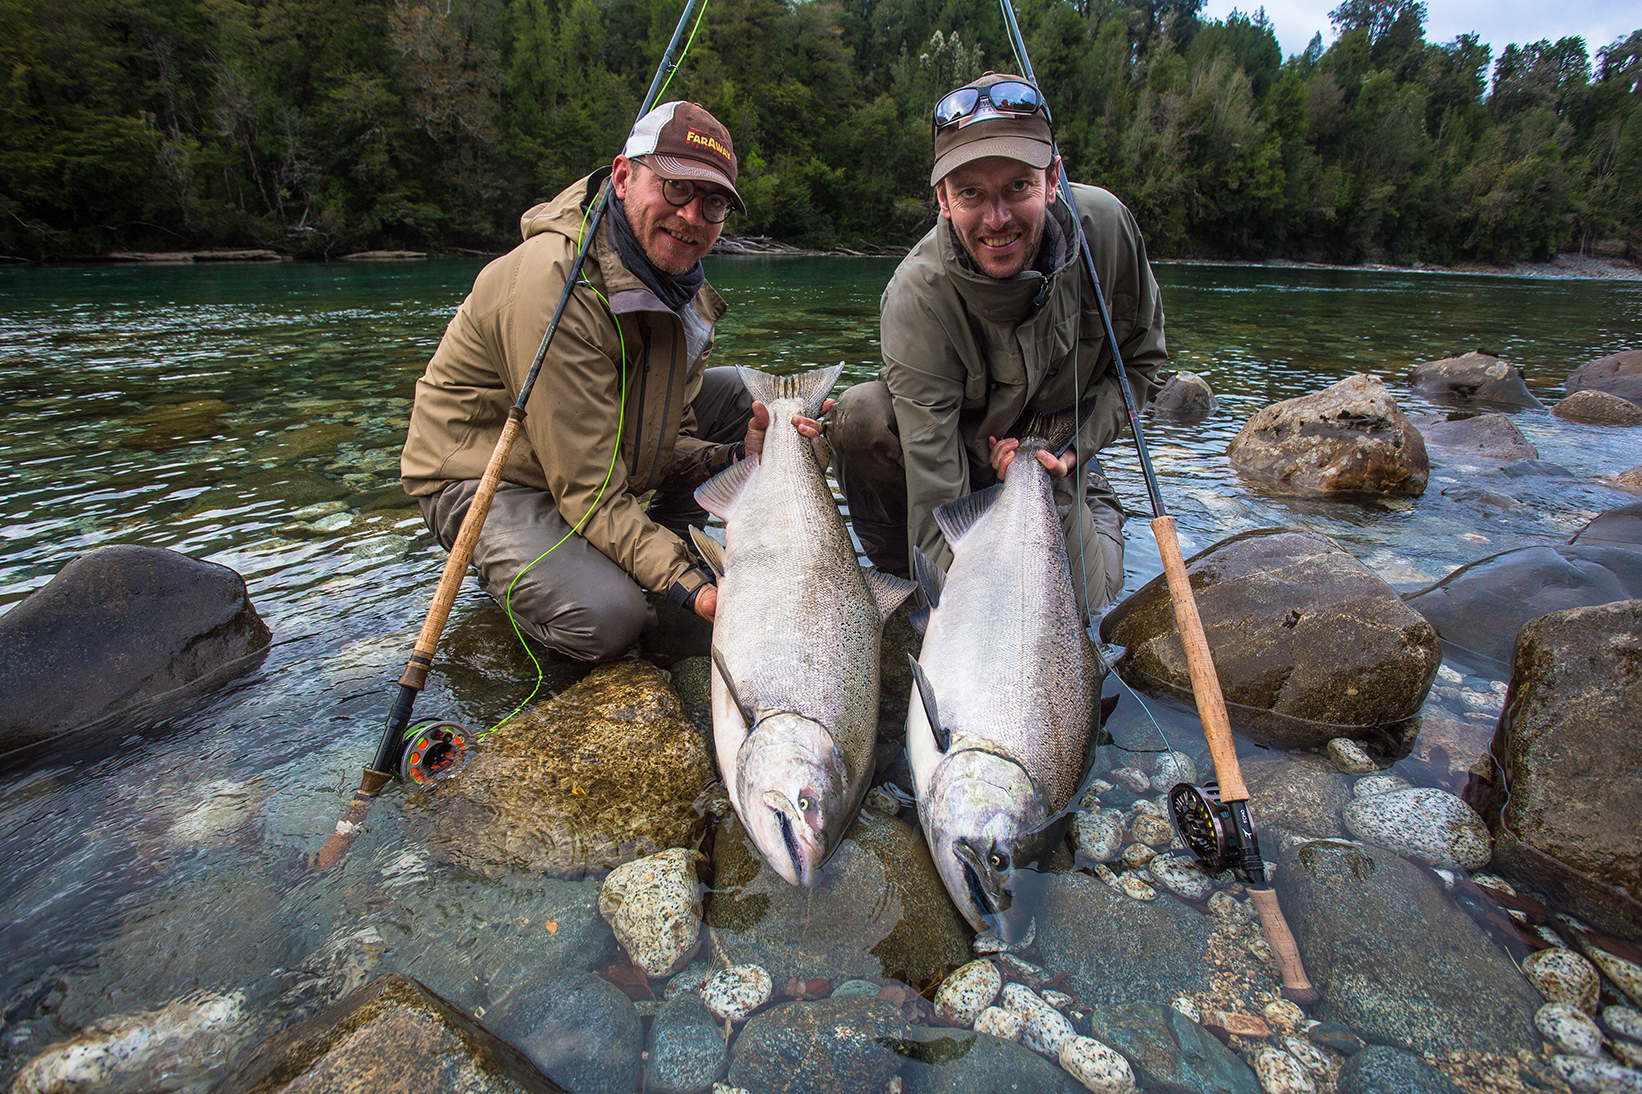 Salmon in Patagonia Show Diverse Lineage